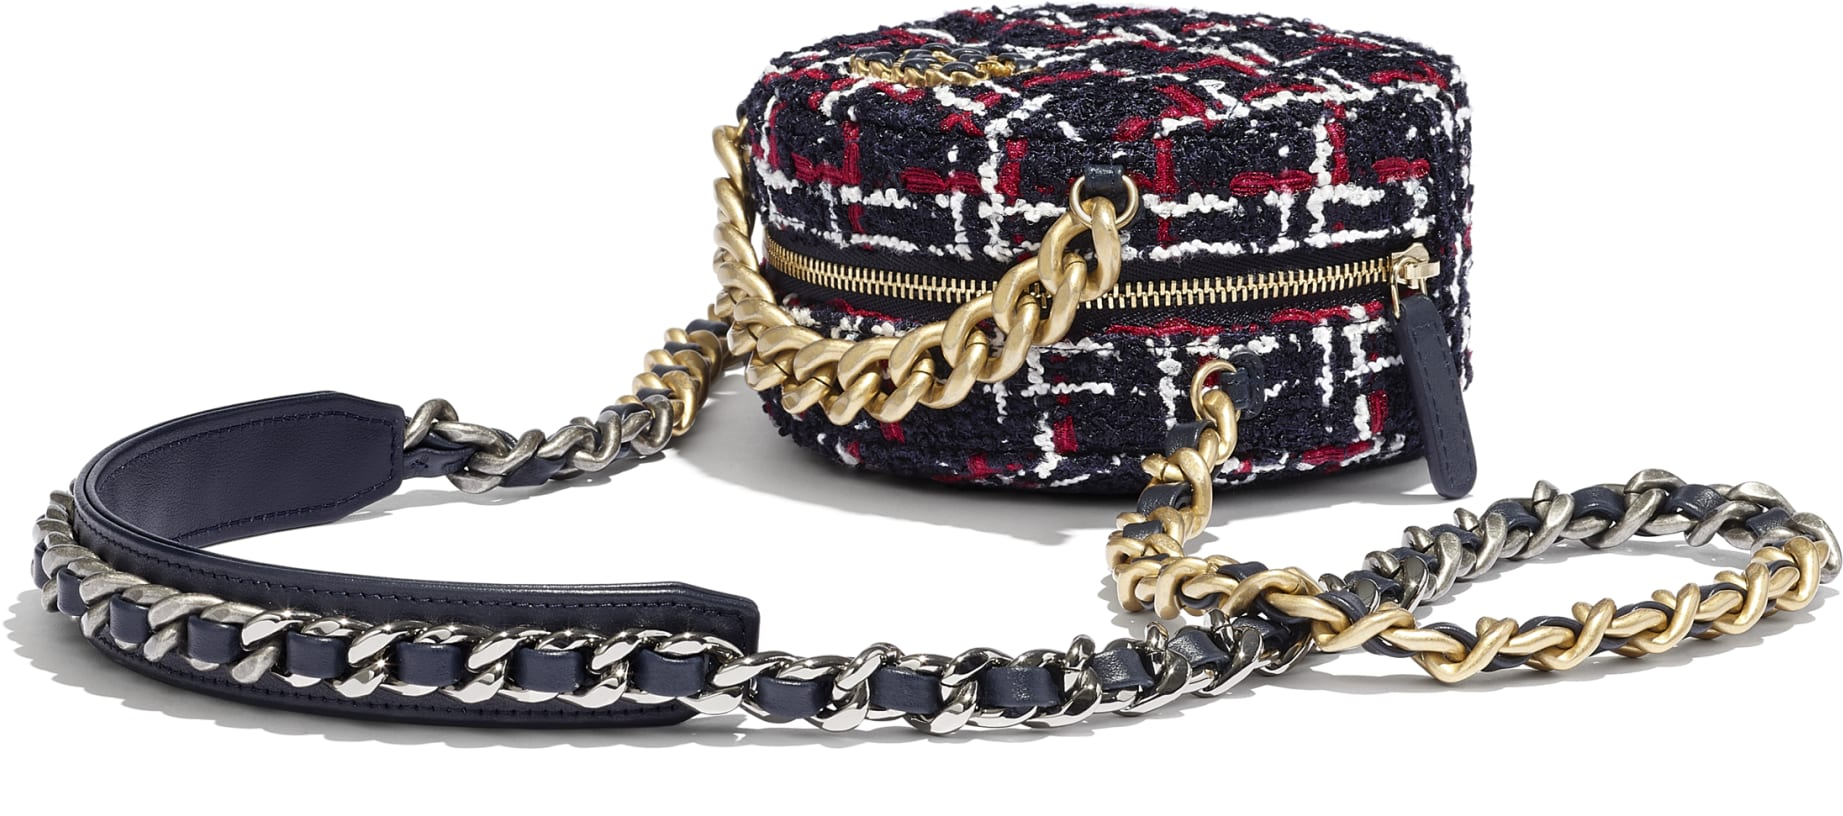 CHANEL 19 Clutch with Chain